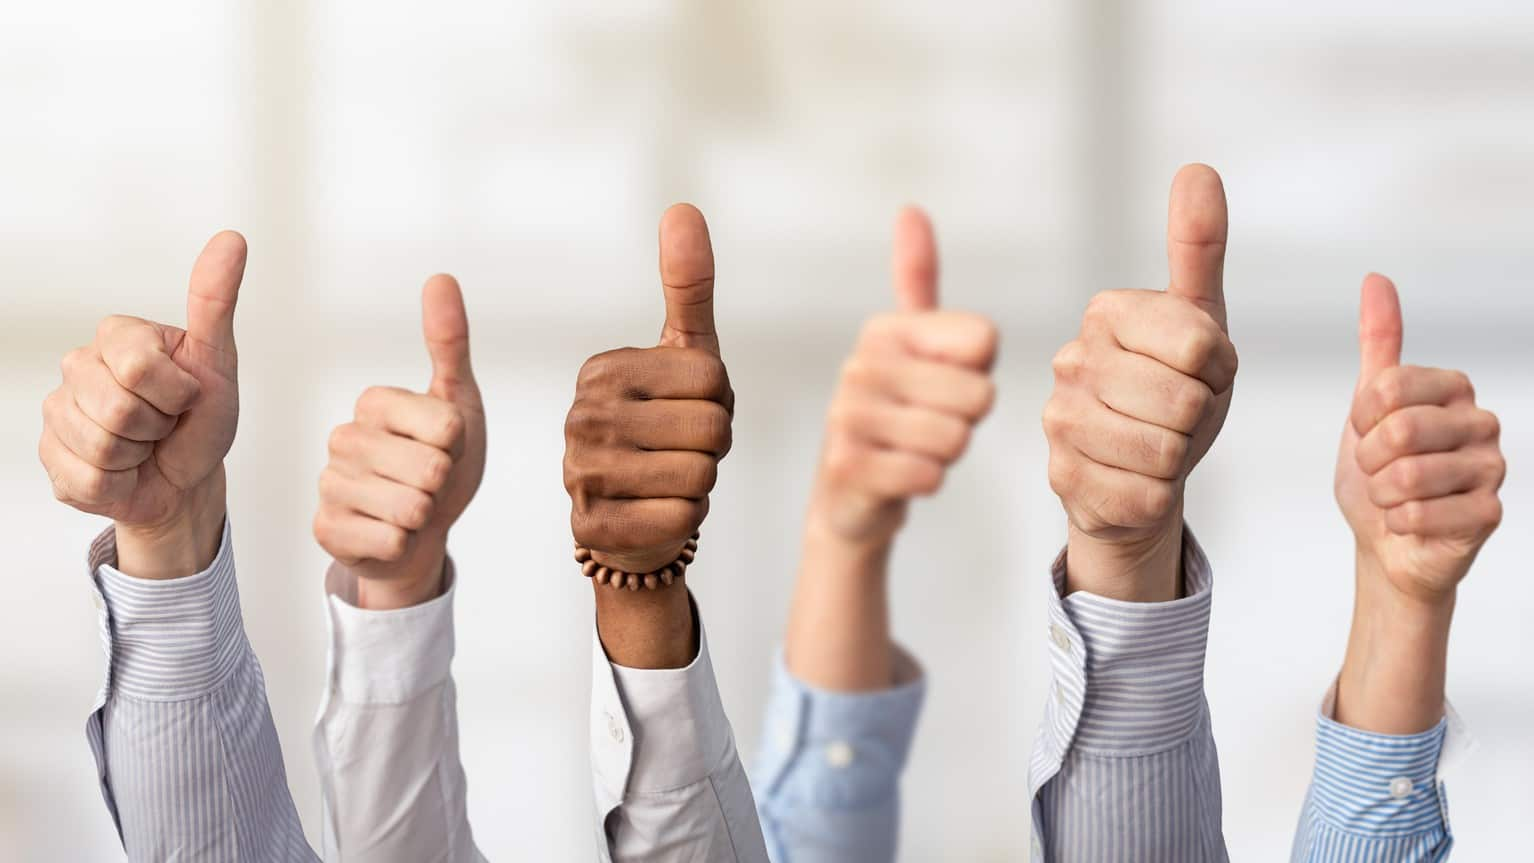 group of hands all giving thumbs up gesture